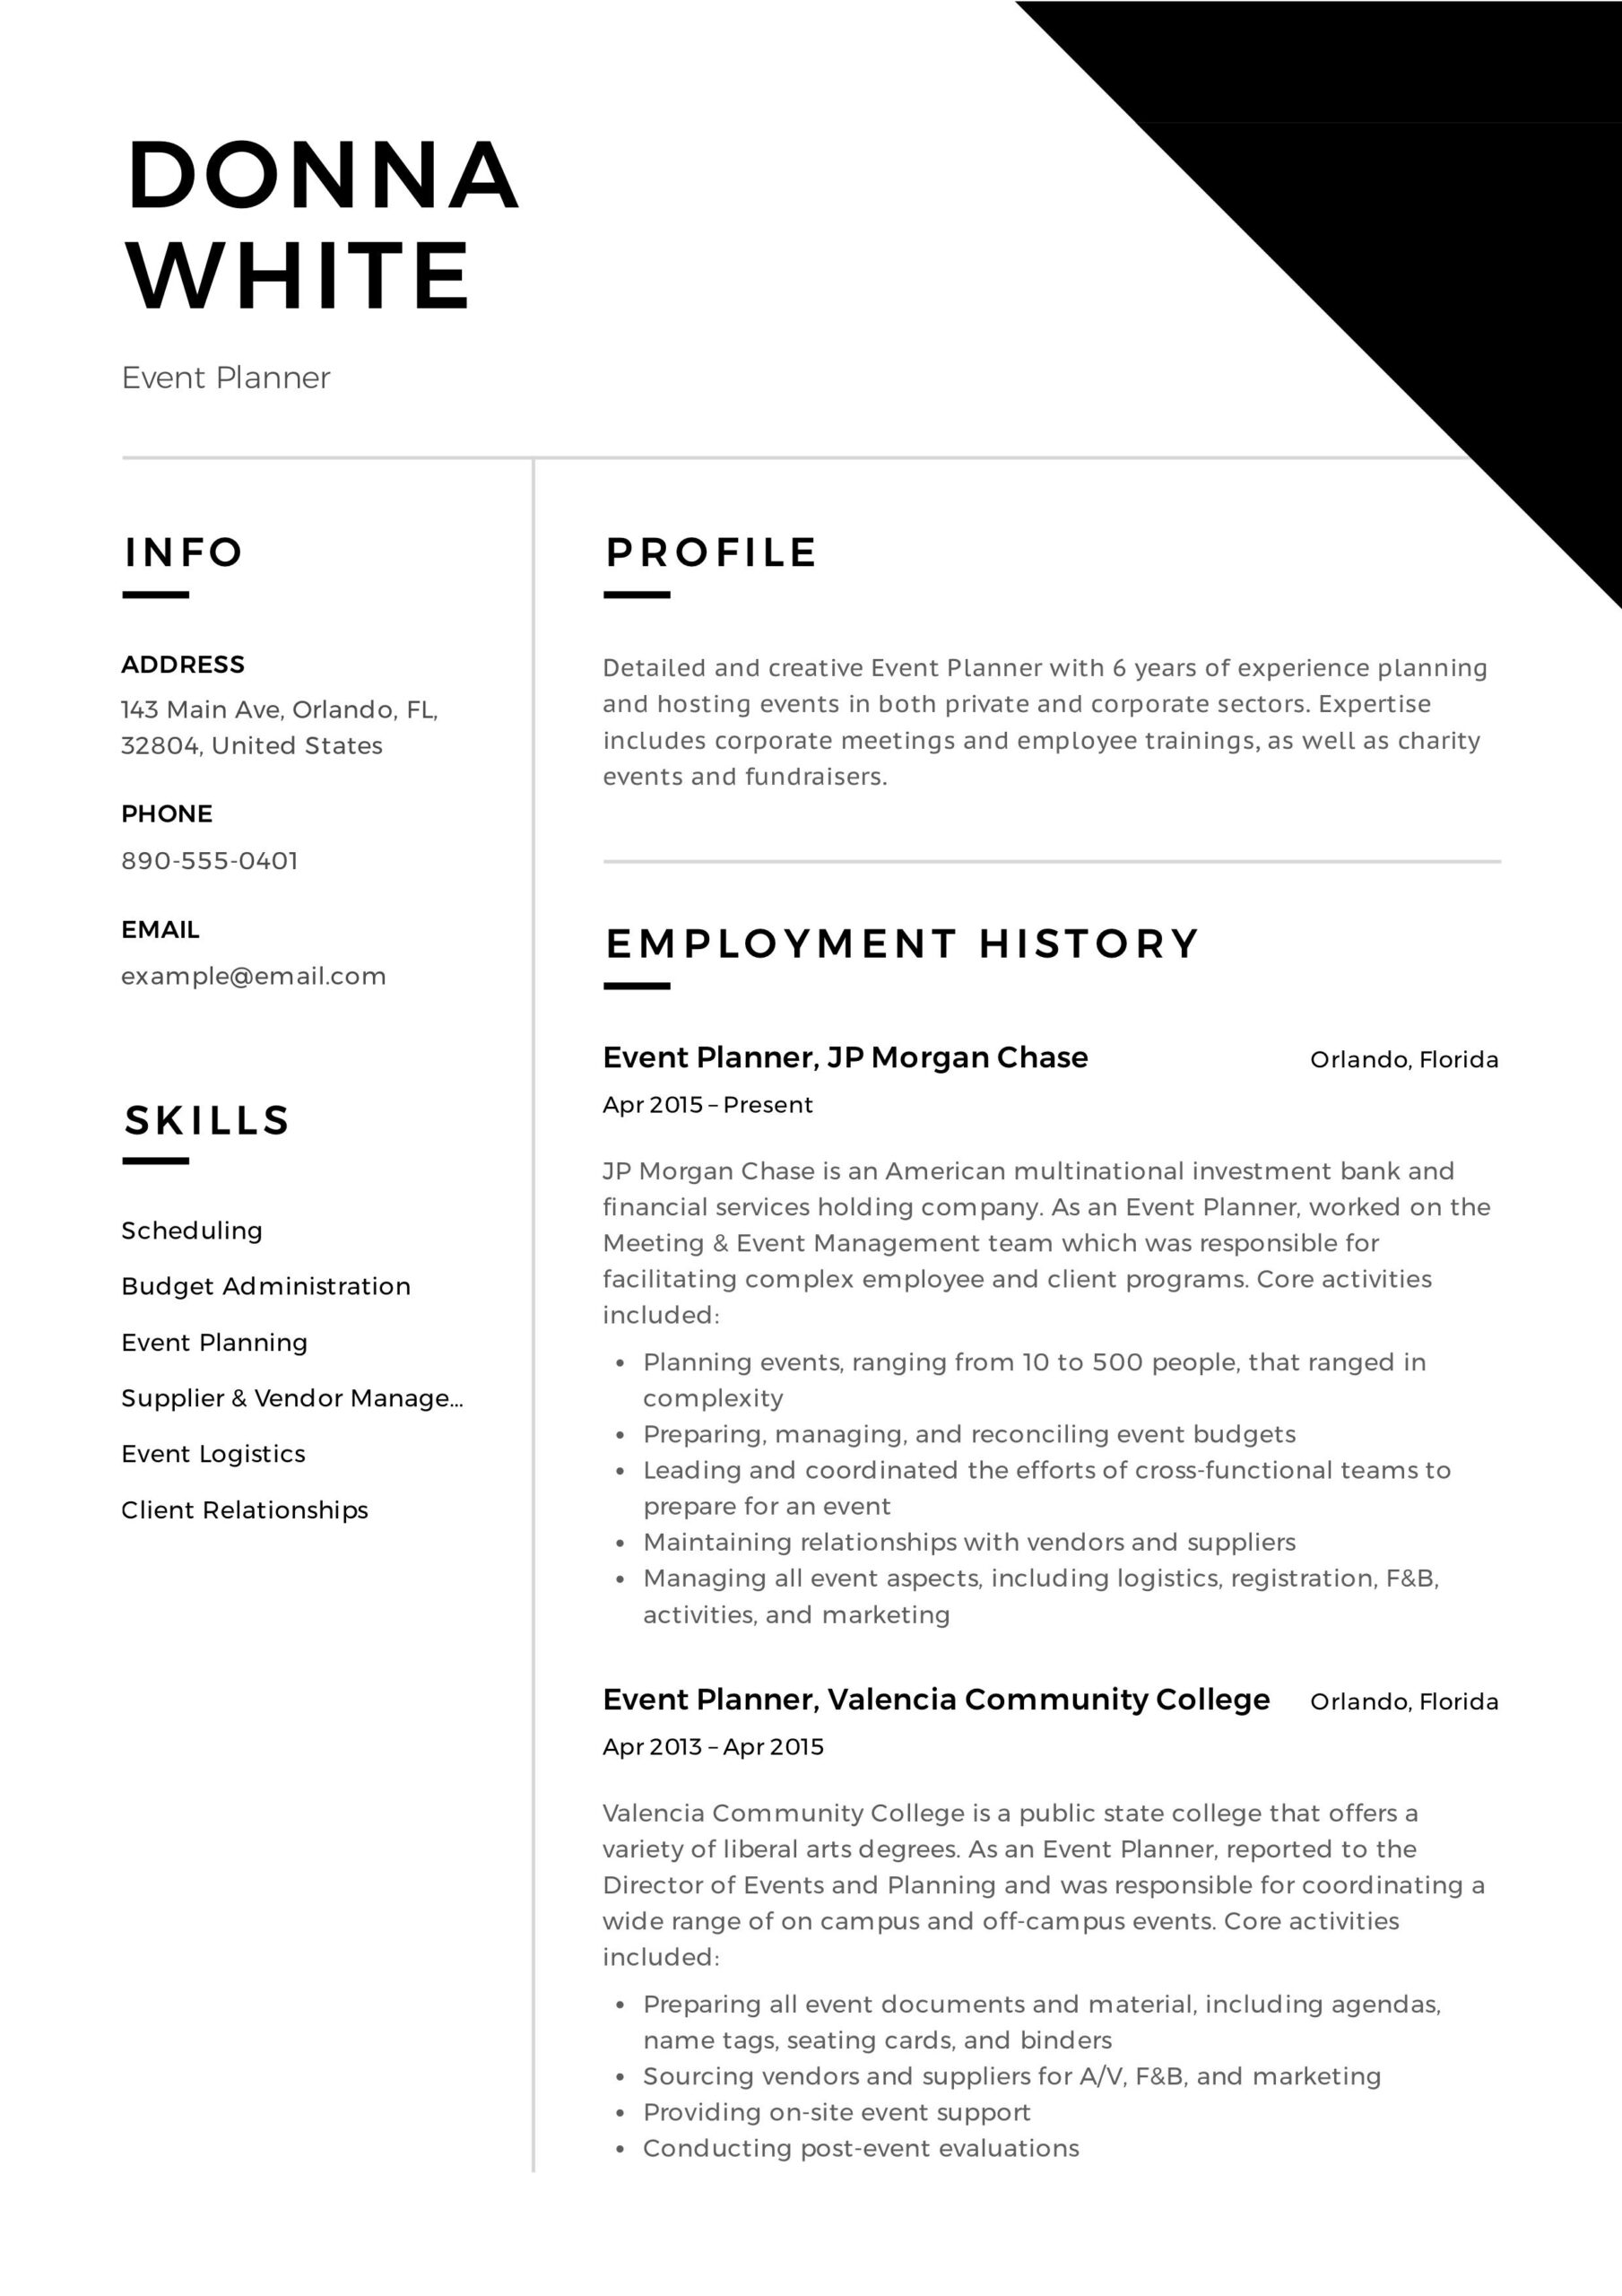 event planner resume professional examples party sample troubleshooting skills indesign Resume Party Planner Resume Sample